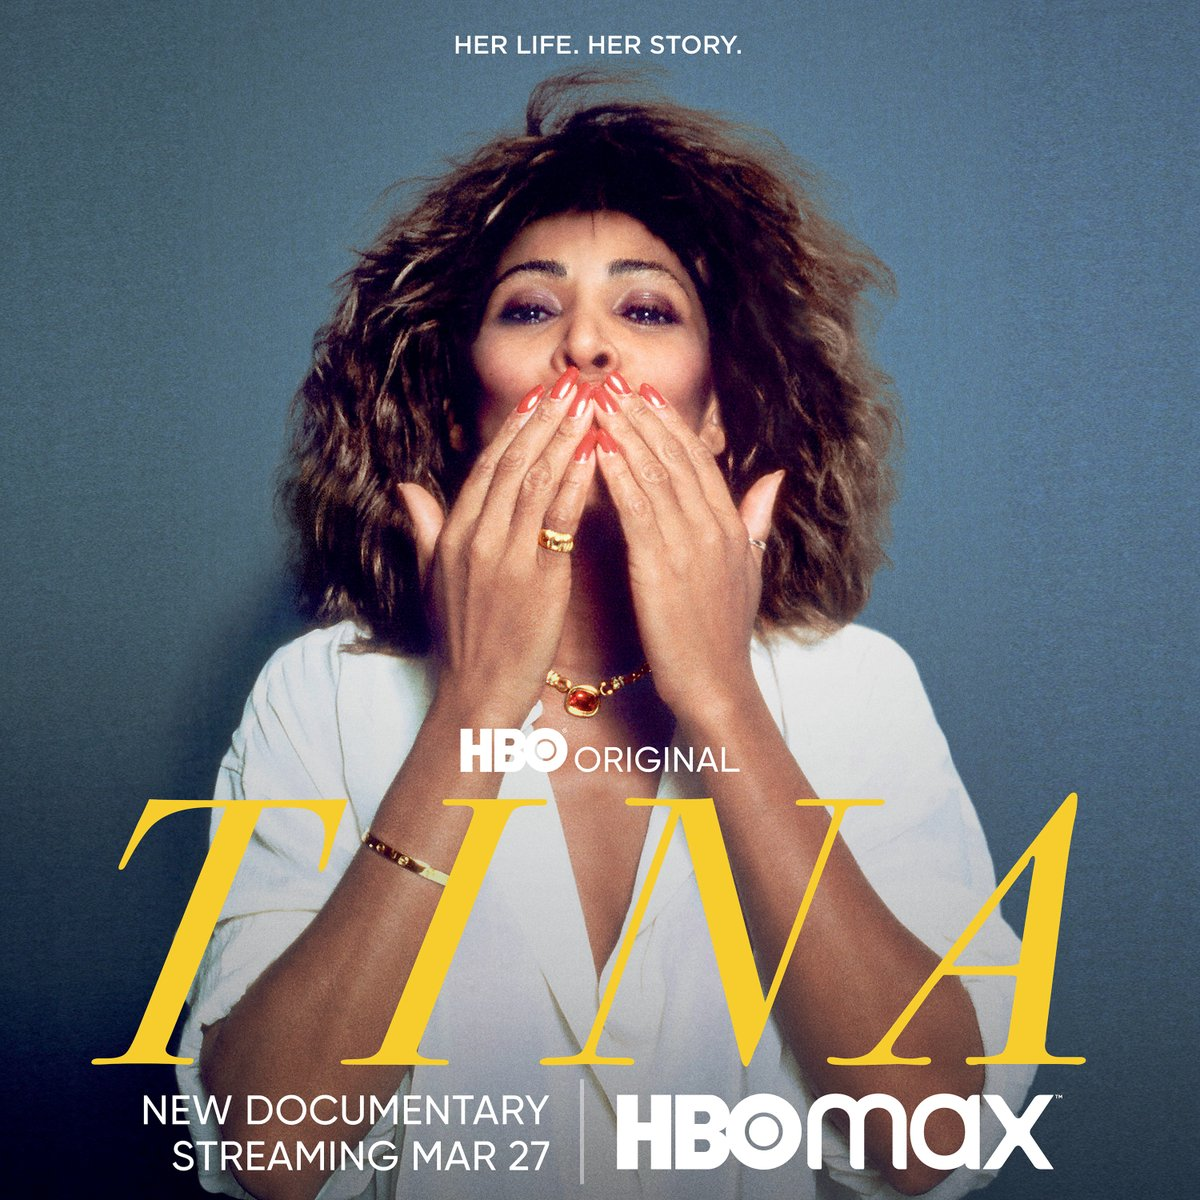 In her own words.  #TinaFilm, a never before seen look into the life of @LoveTinaTurner, premieres March 27 on @HBOMax.